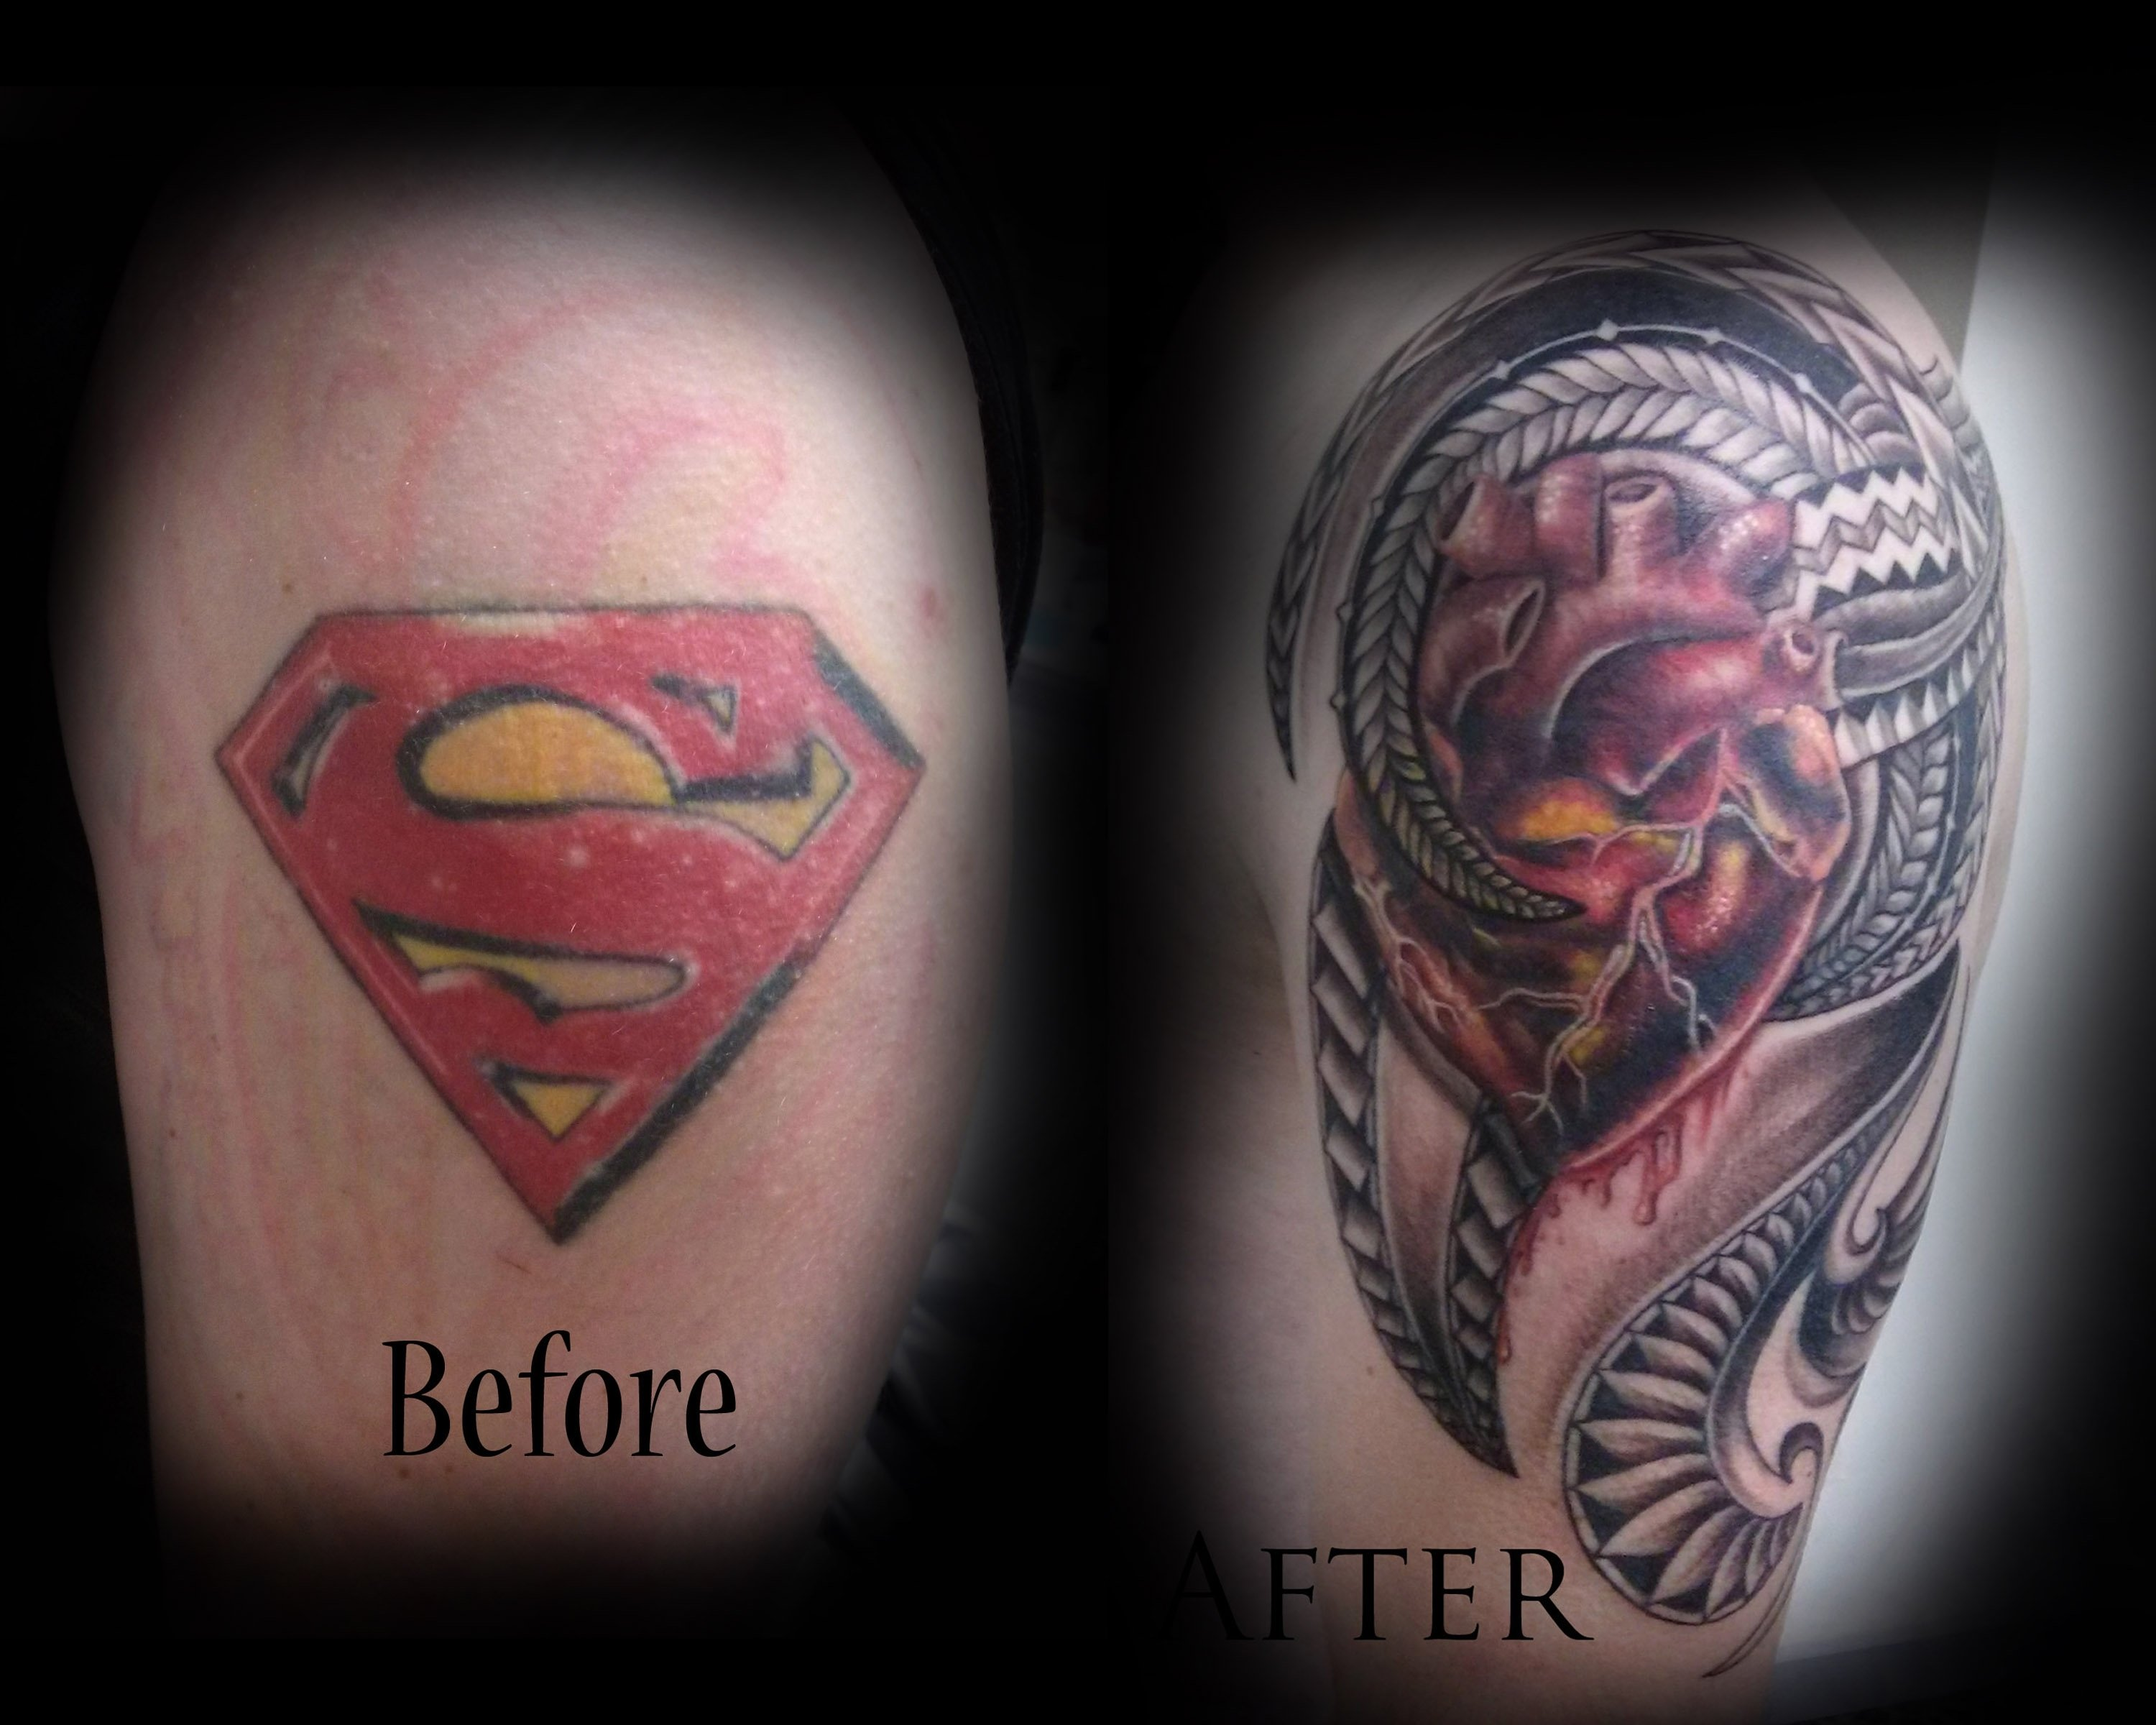 10 Stylish Heart Tattoo Cover Up Ideas download heart tattoo cover up ideas danesharacmc 2020